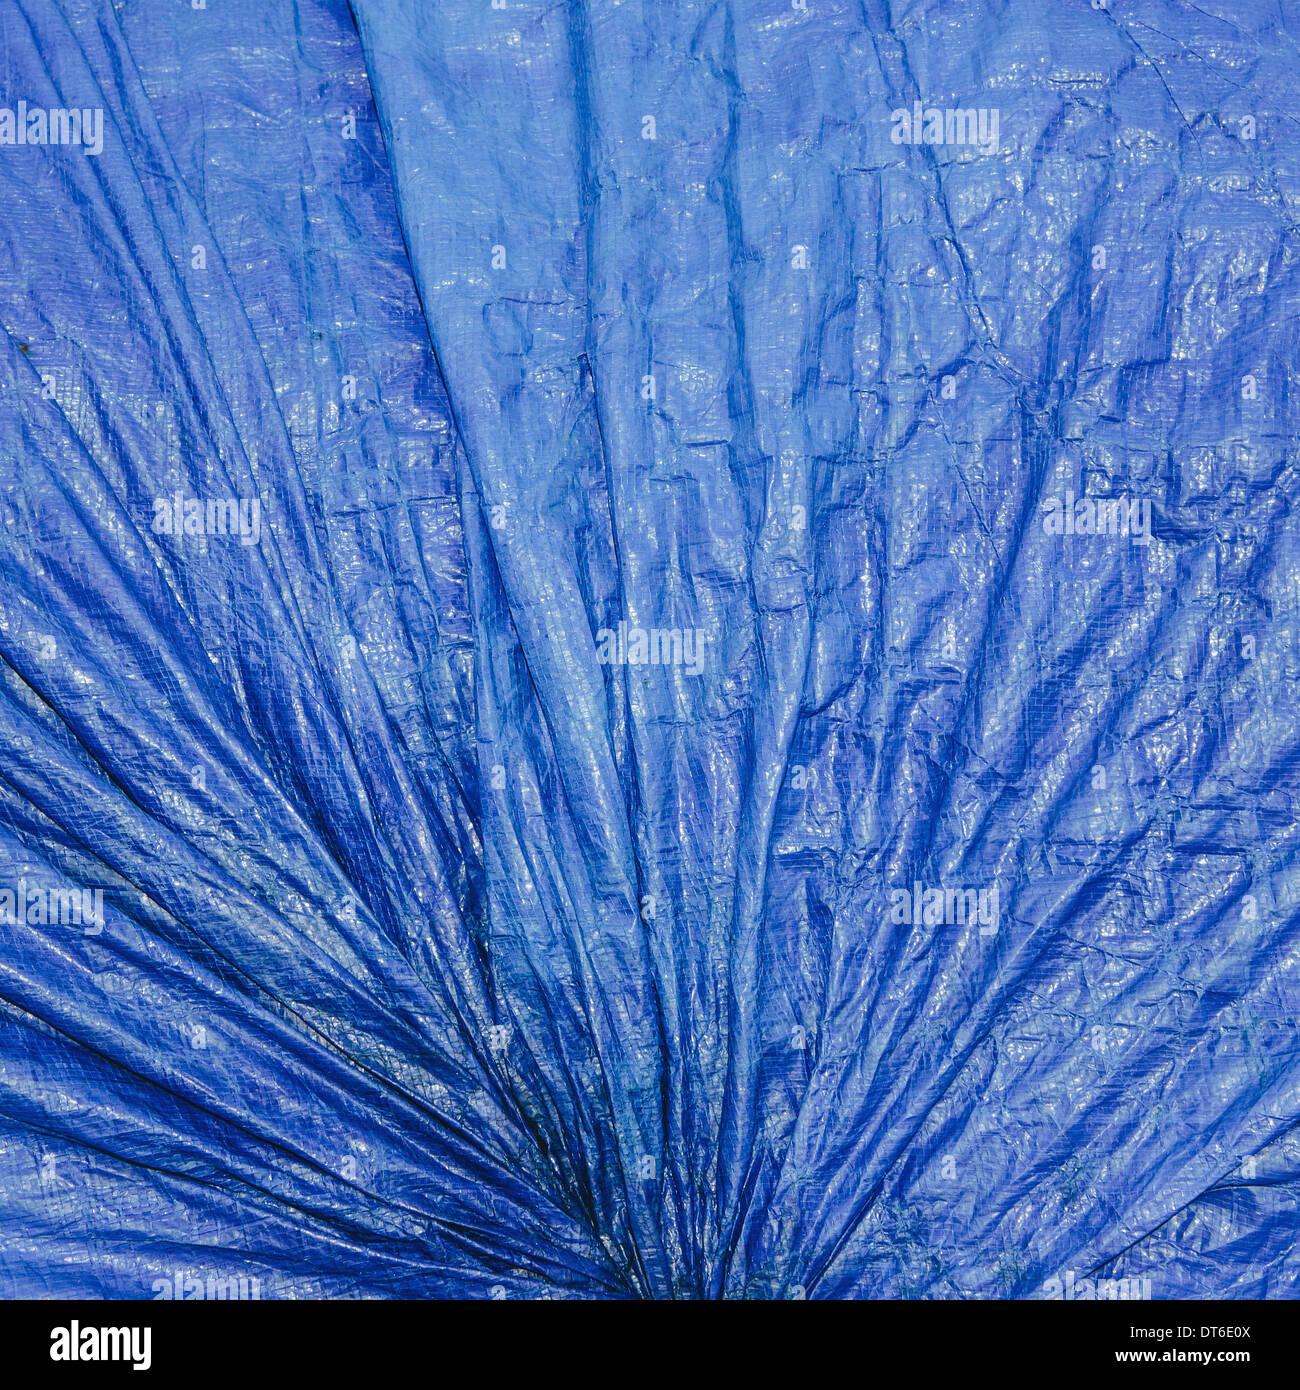 a blue tarpaulin covering gathered and tied as a covering over commercial fishing nets, Fisherman's Terminal, Seattle - Stock Image